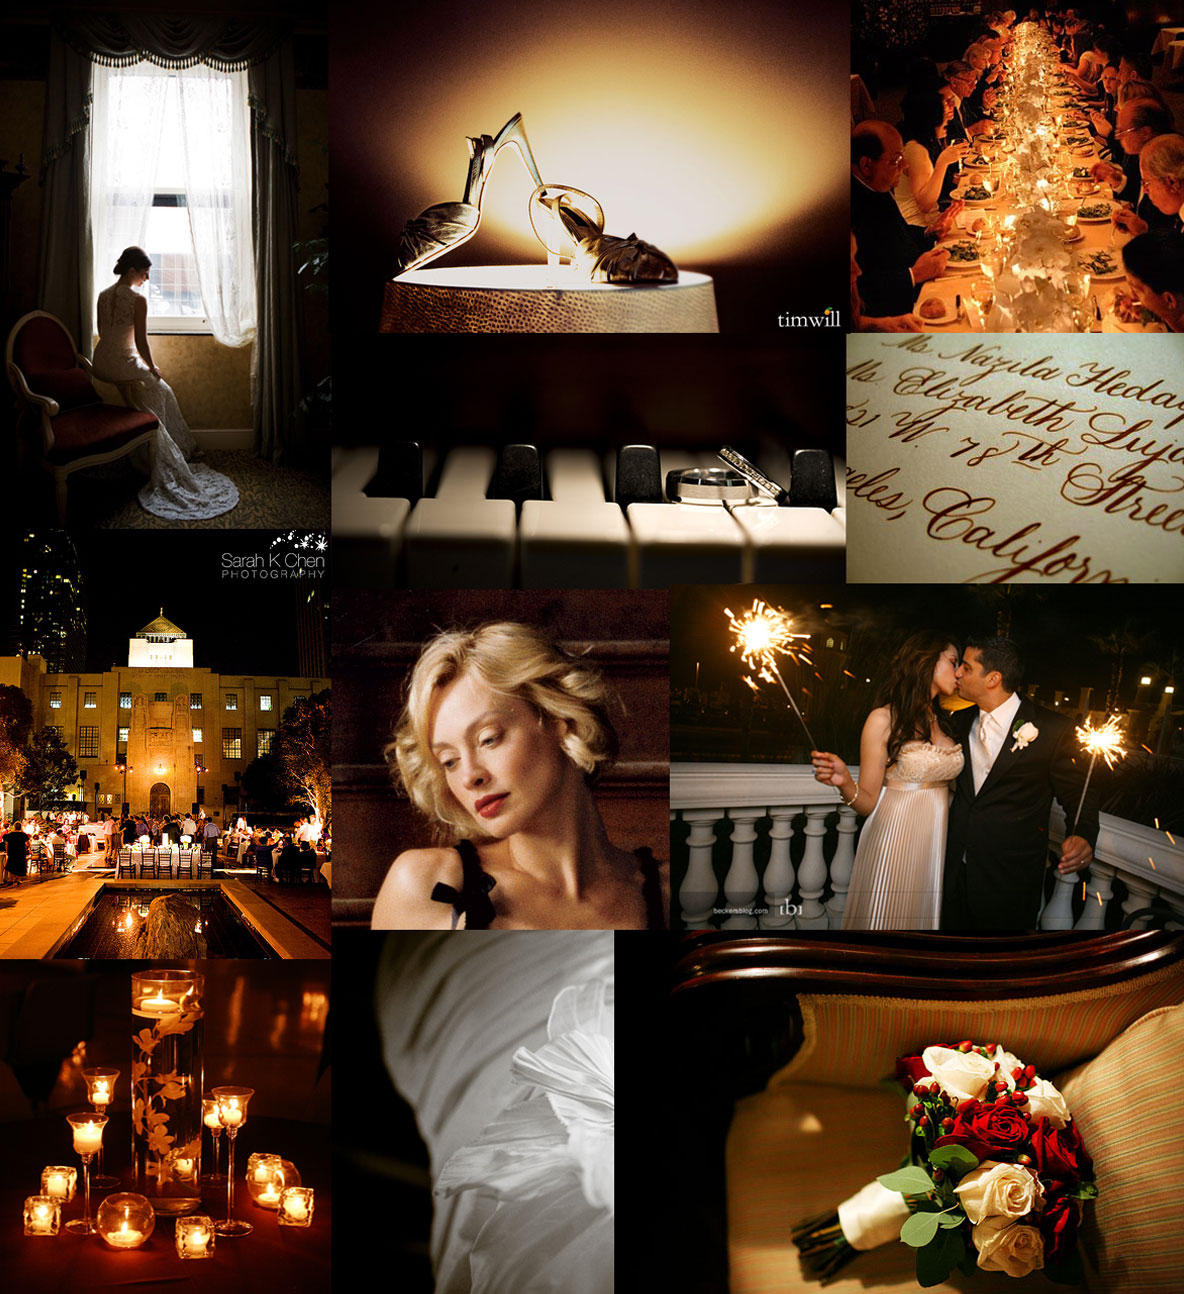 dark and elegant candlelight wedding inspiration board